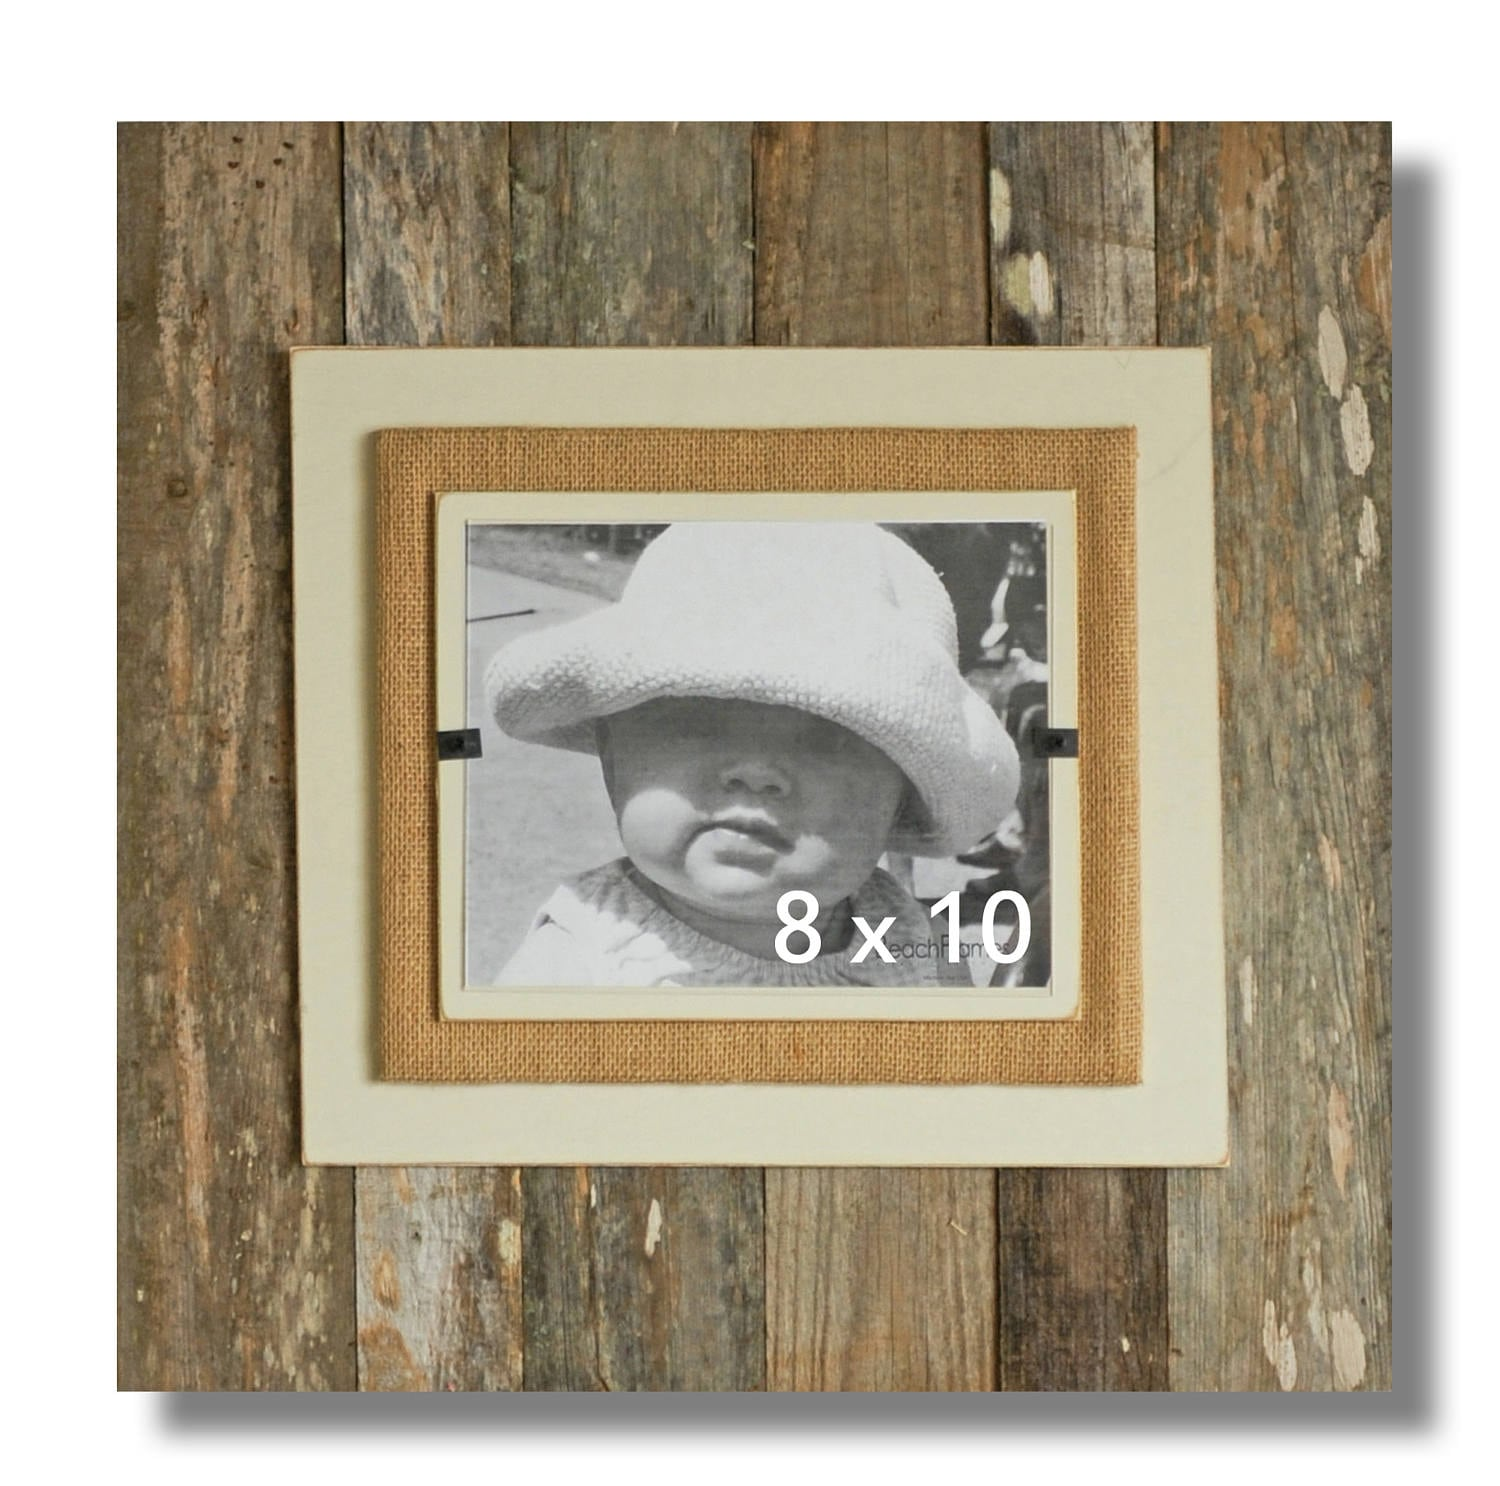 Reclaimed wood picture frame 8 x 10 4 x 6 5 x 7 picture zoom jeuxipadfo Images